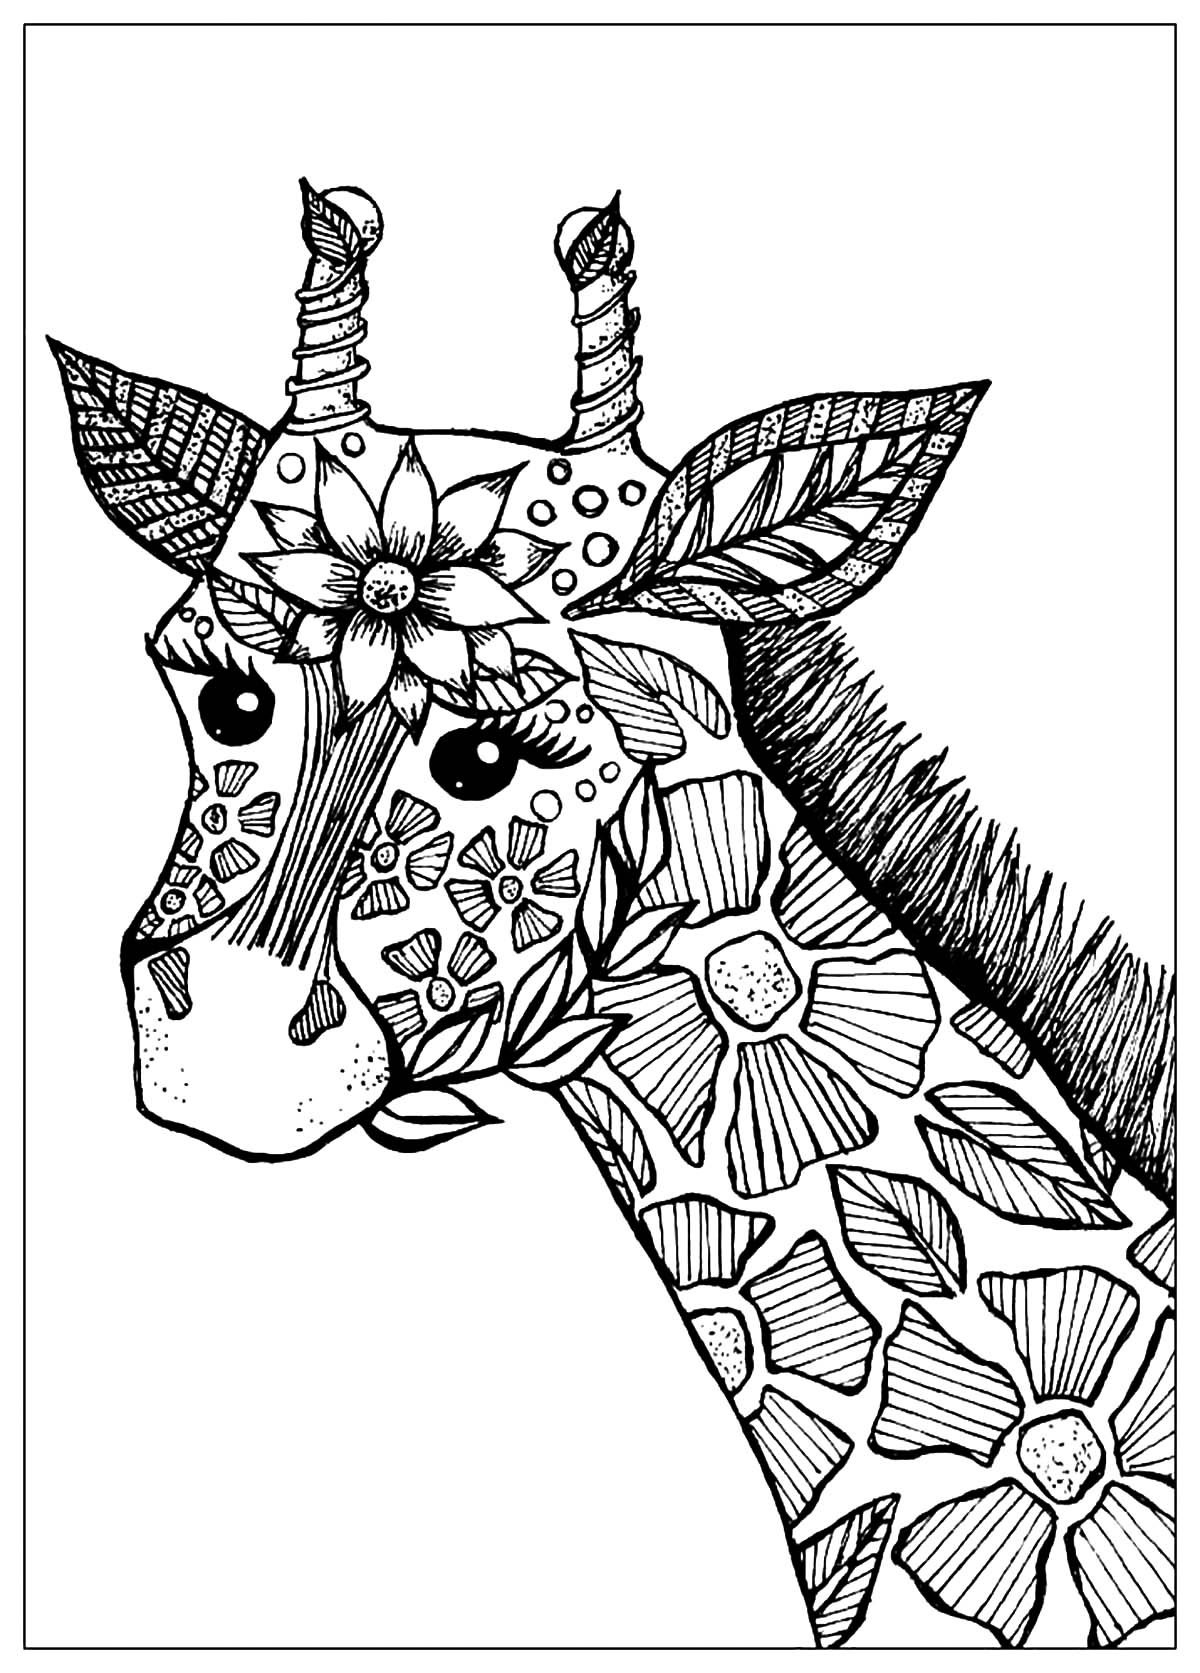 Giraffe Head With Flowers The Stains Of This Giraffe Have Been Drawn Like Flowers From Giraffe Coloring Pages Animal Coloring Pages Abstract Coloring Pages